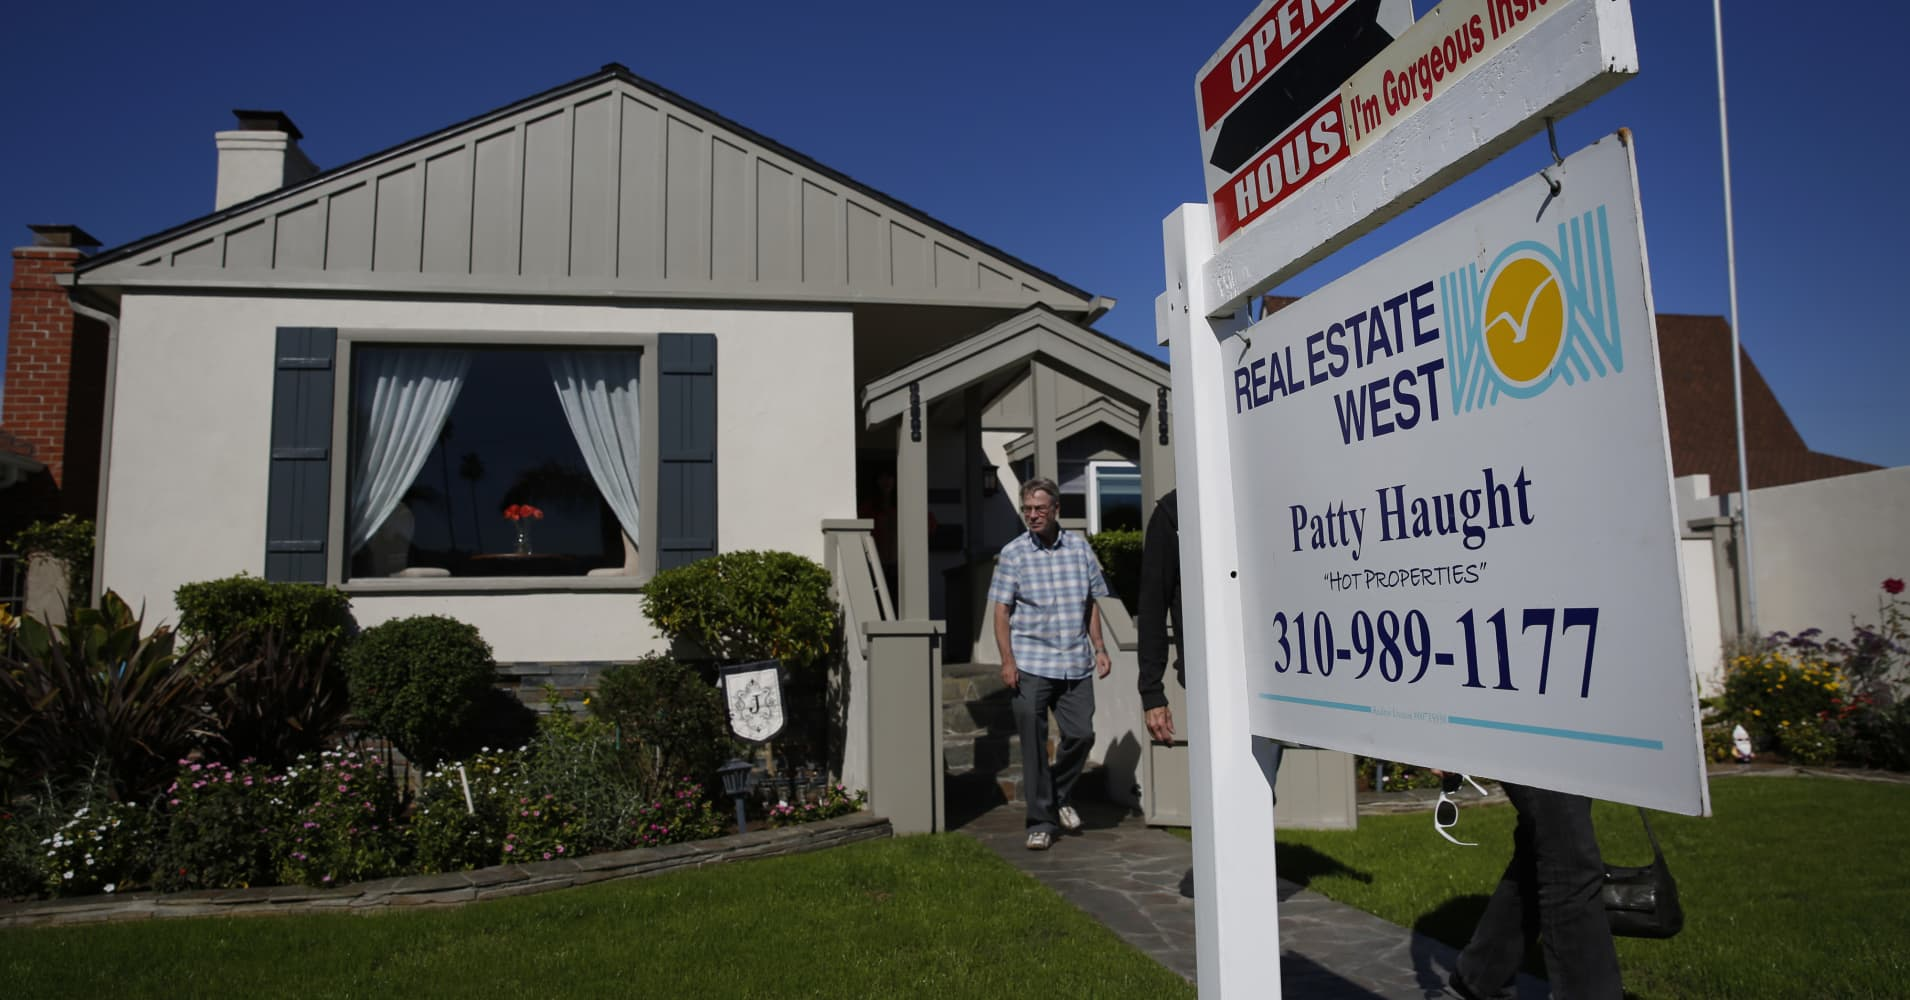 Homebuyer demand suddenly falling off as inventory keeps shrinking